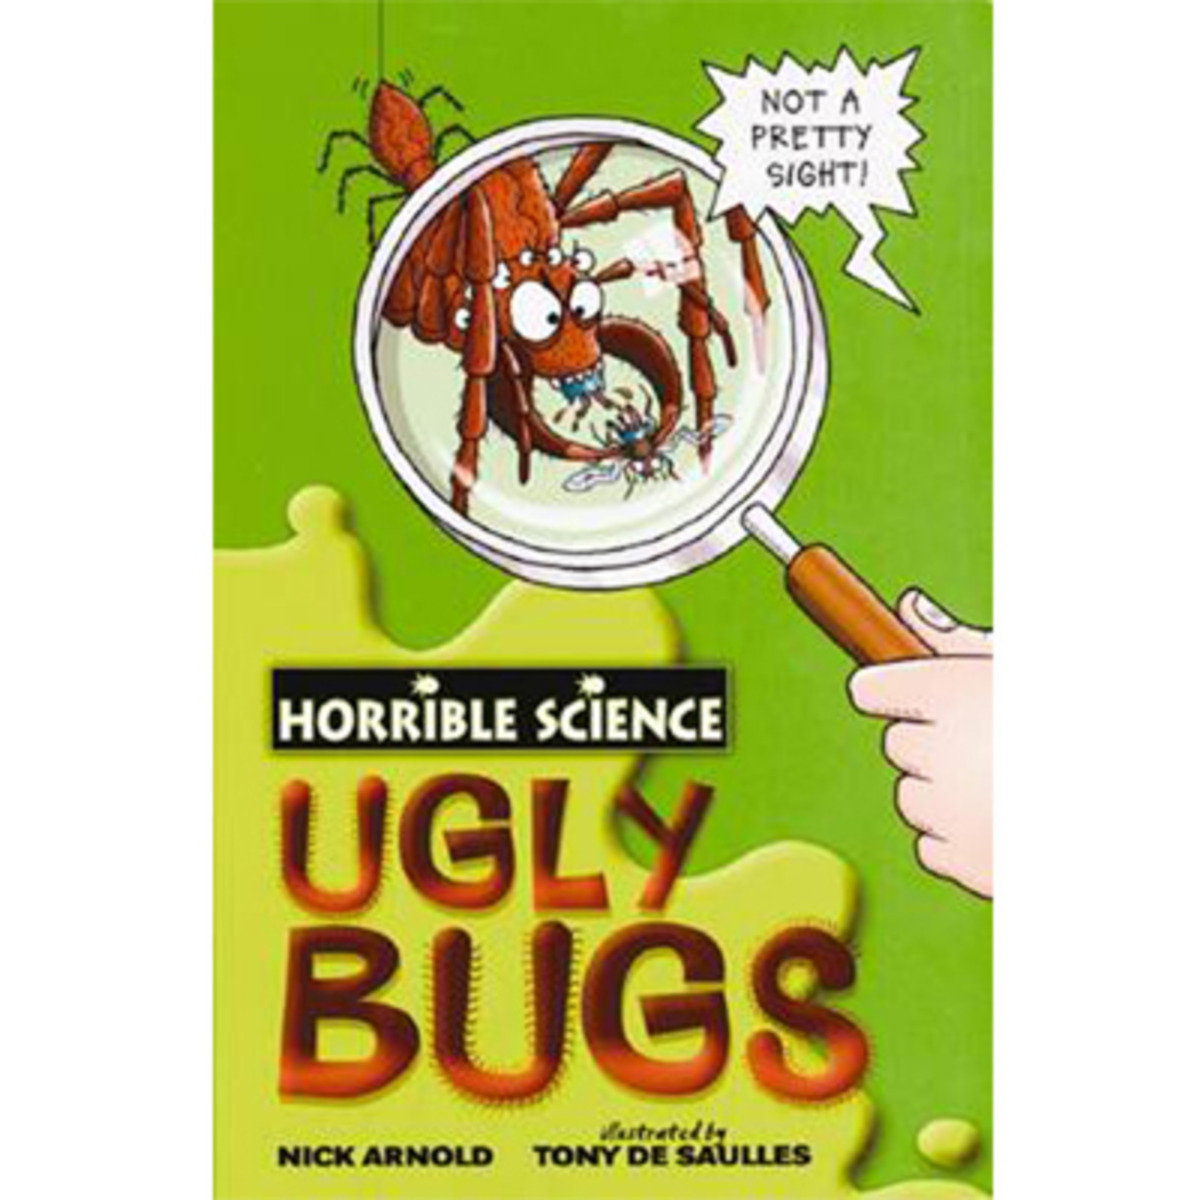 HORRIBLE SCIENCE: UGLY BUGS 9780439944526